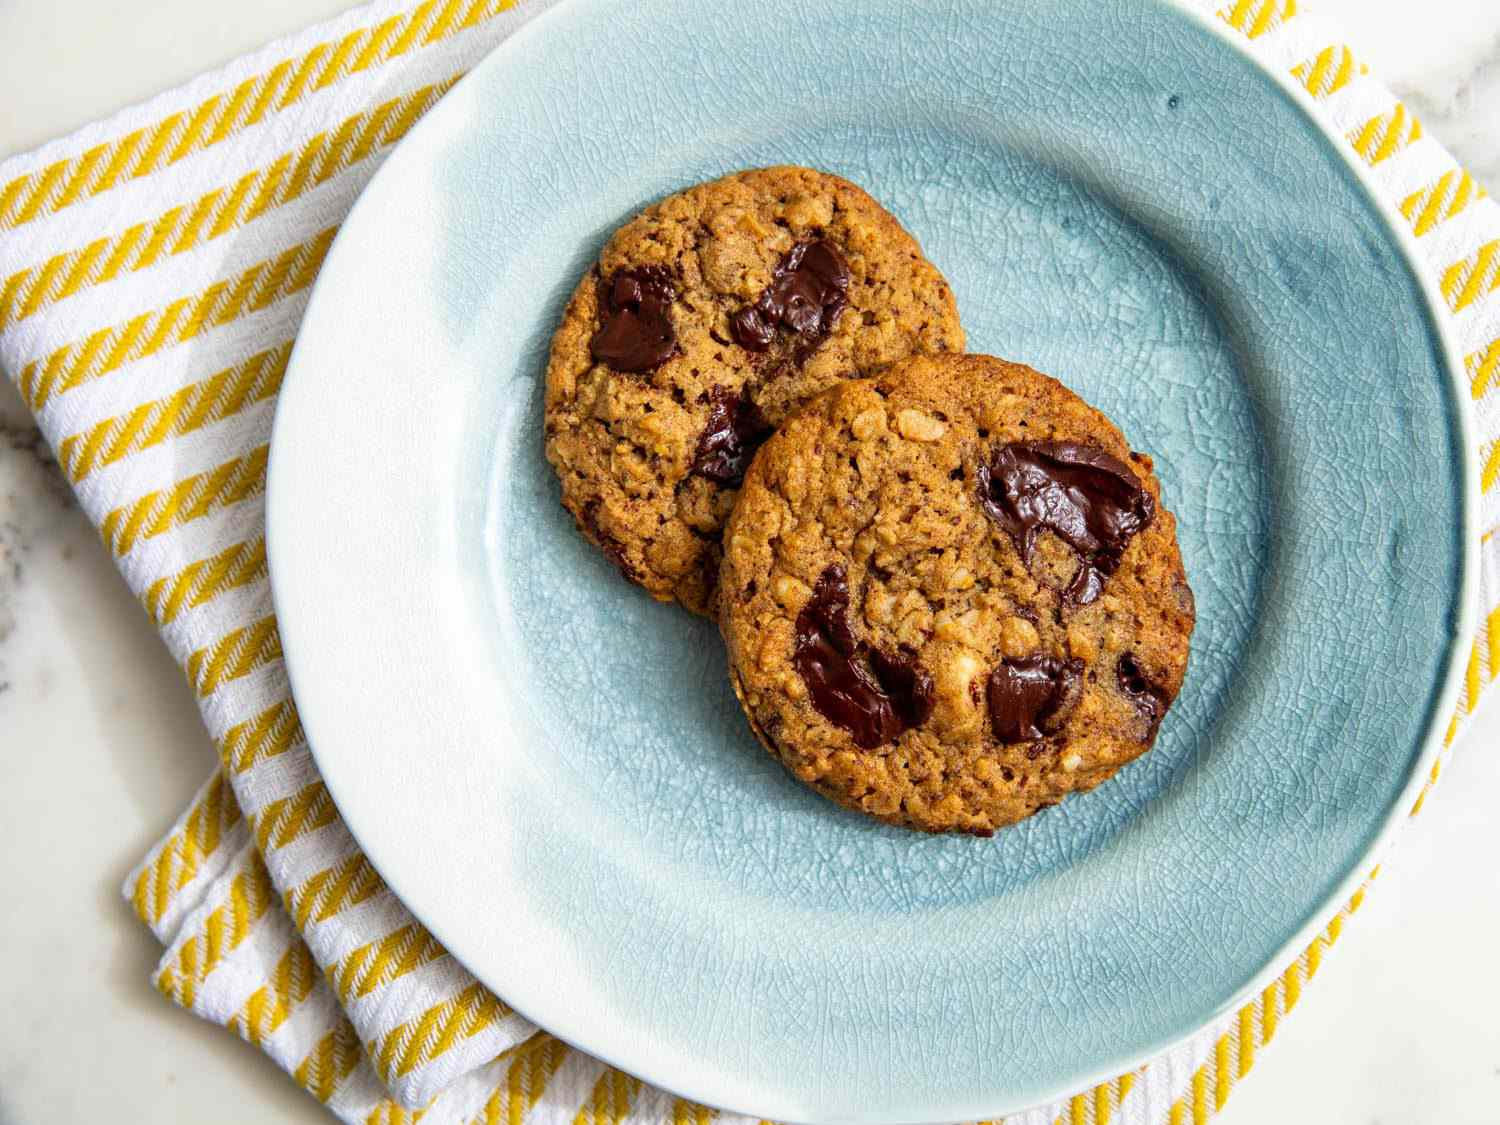 two oatmeal chocolate chip cookies on a blue plate, seen from above